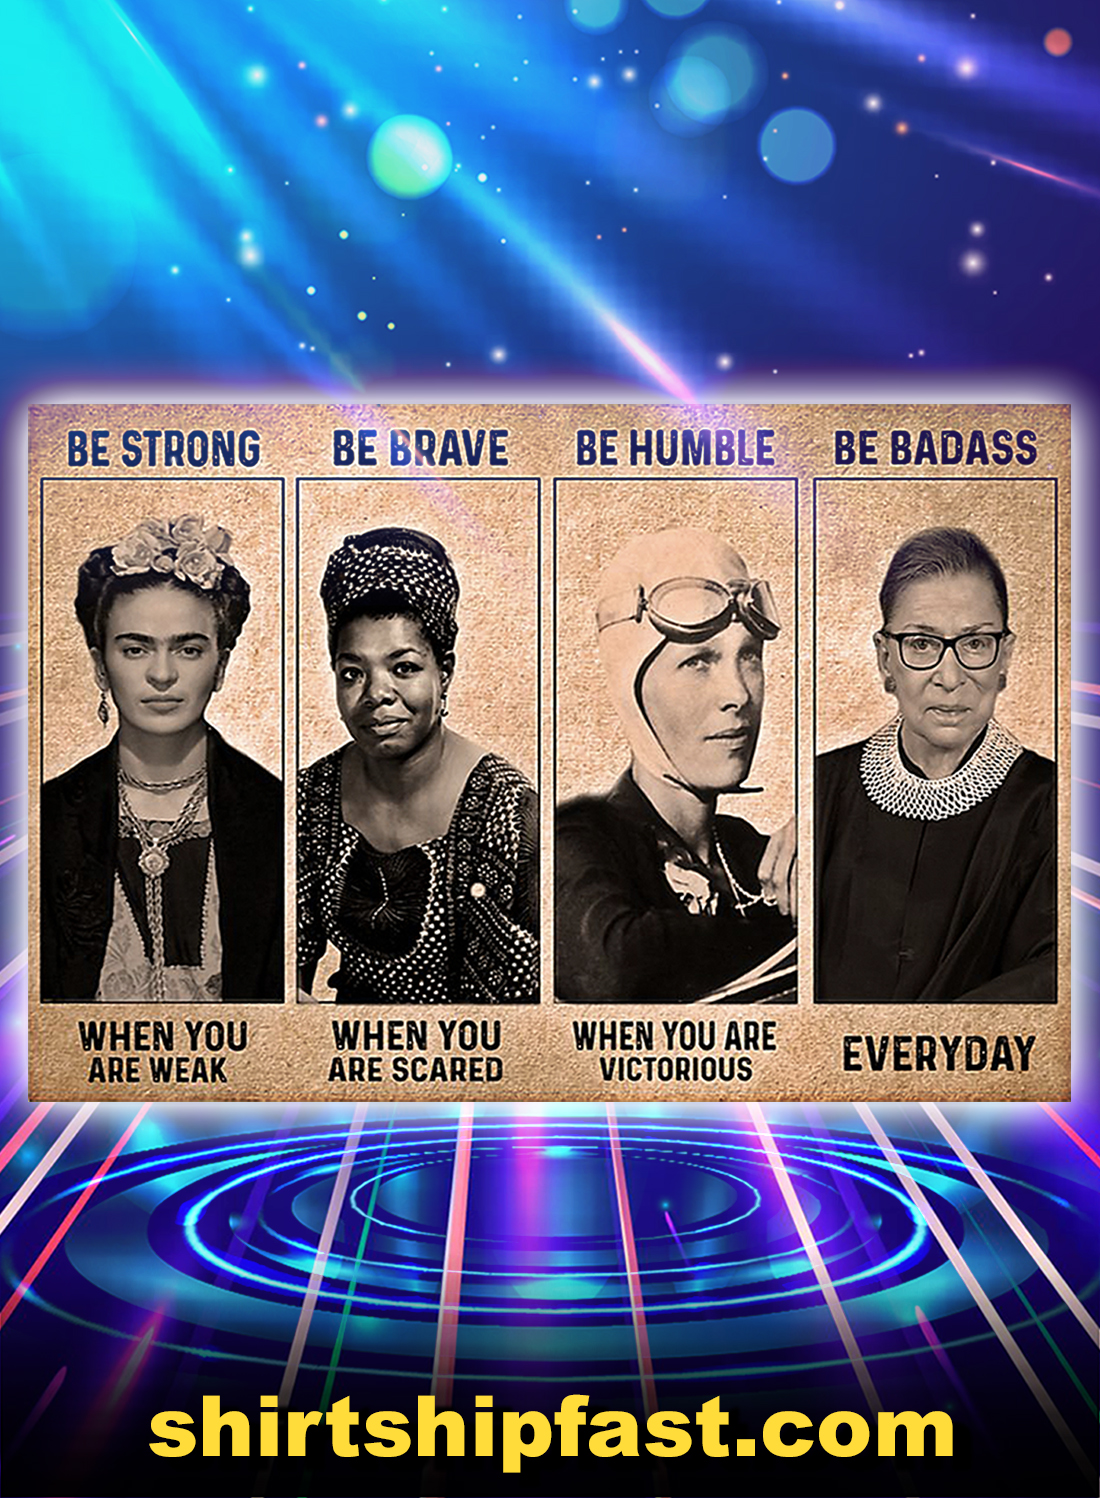 Frida Kahlo Ruth Bader Ginsburg feminist be strong be brave be humble be badass poster - A4